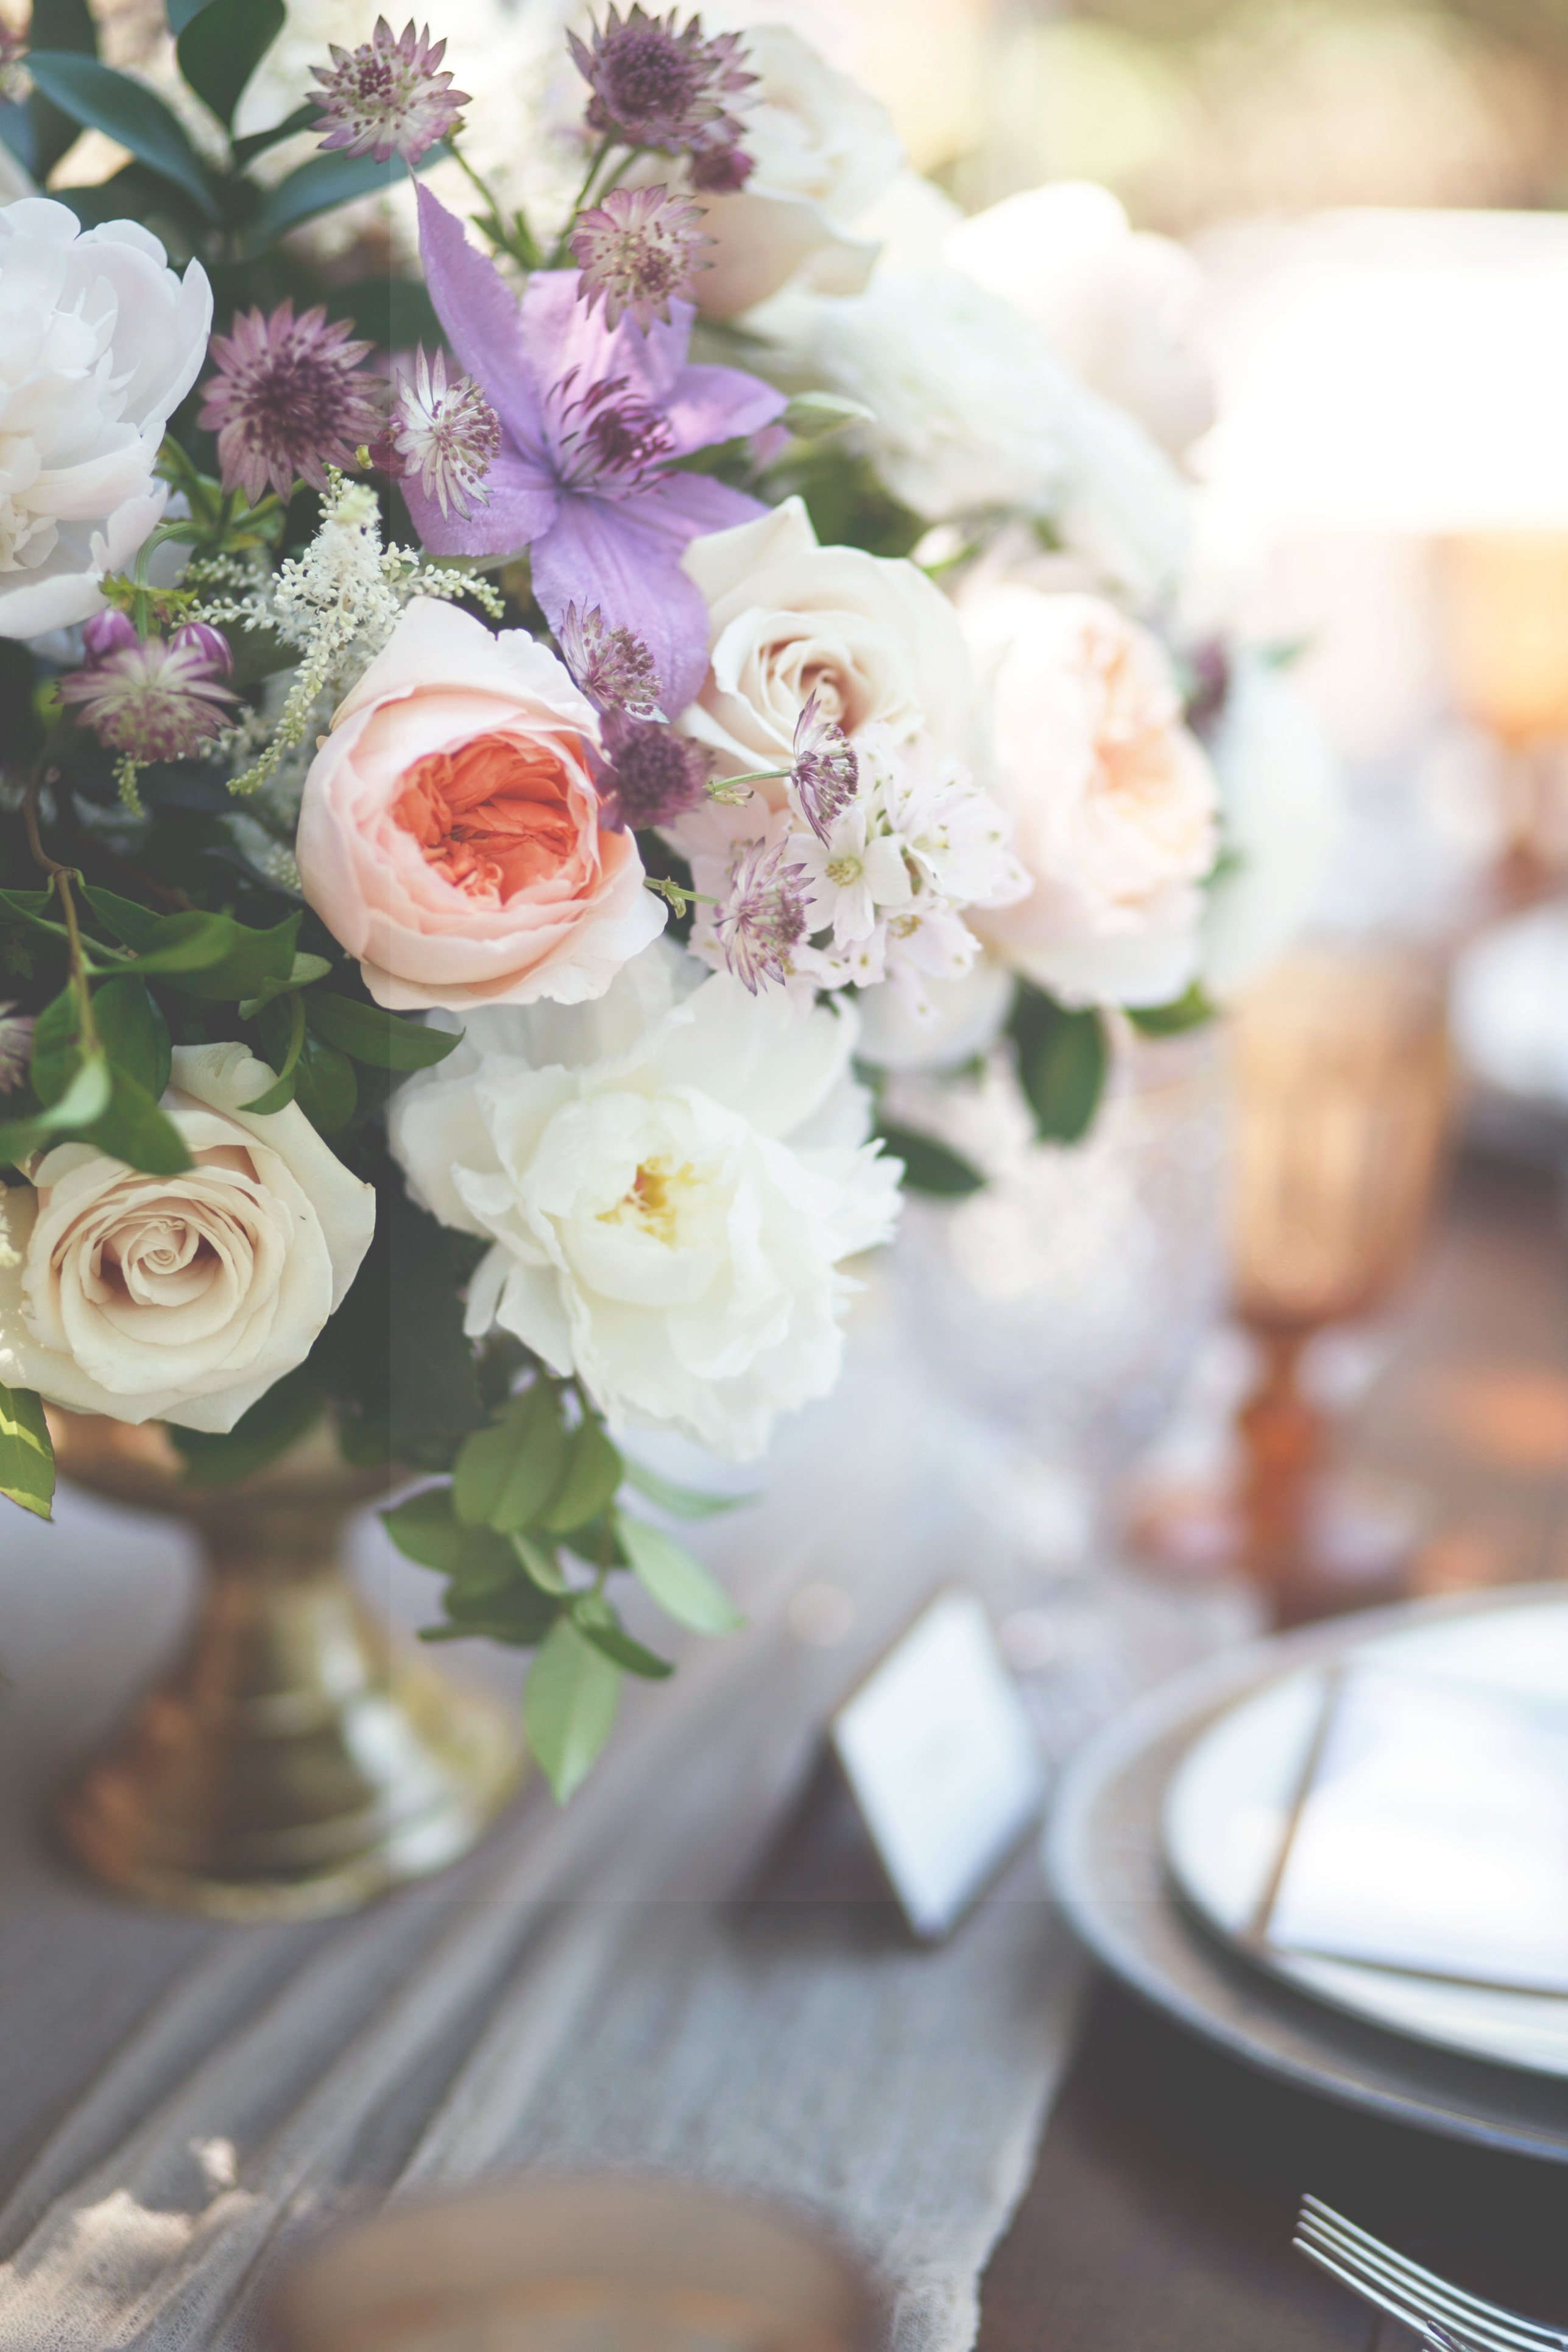 Services | Eventology Weddings